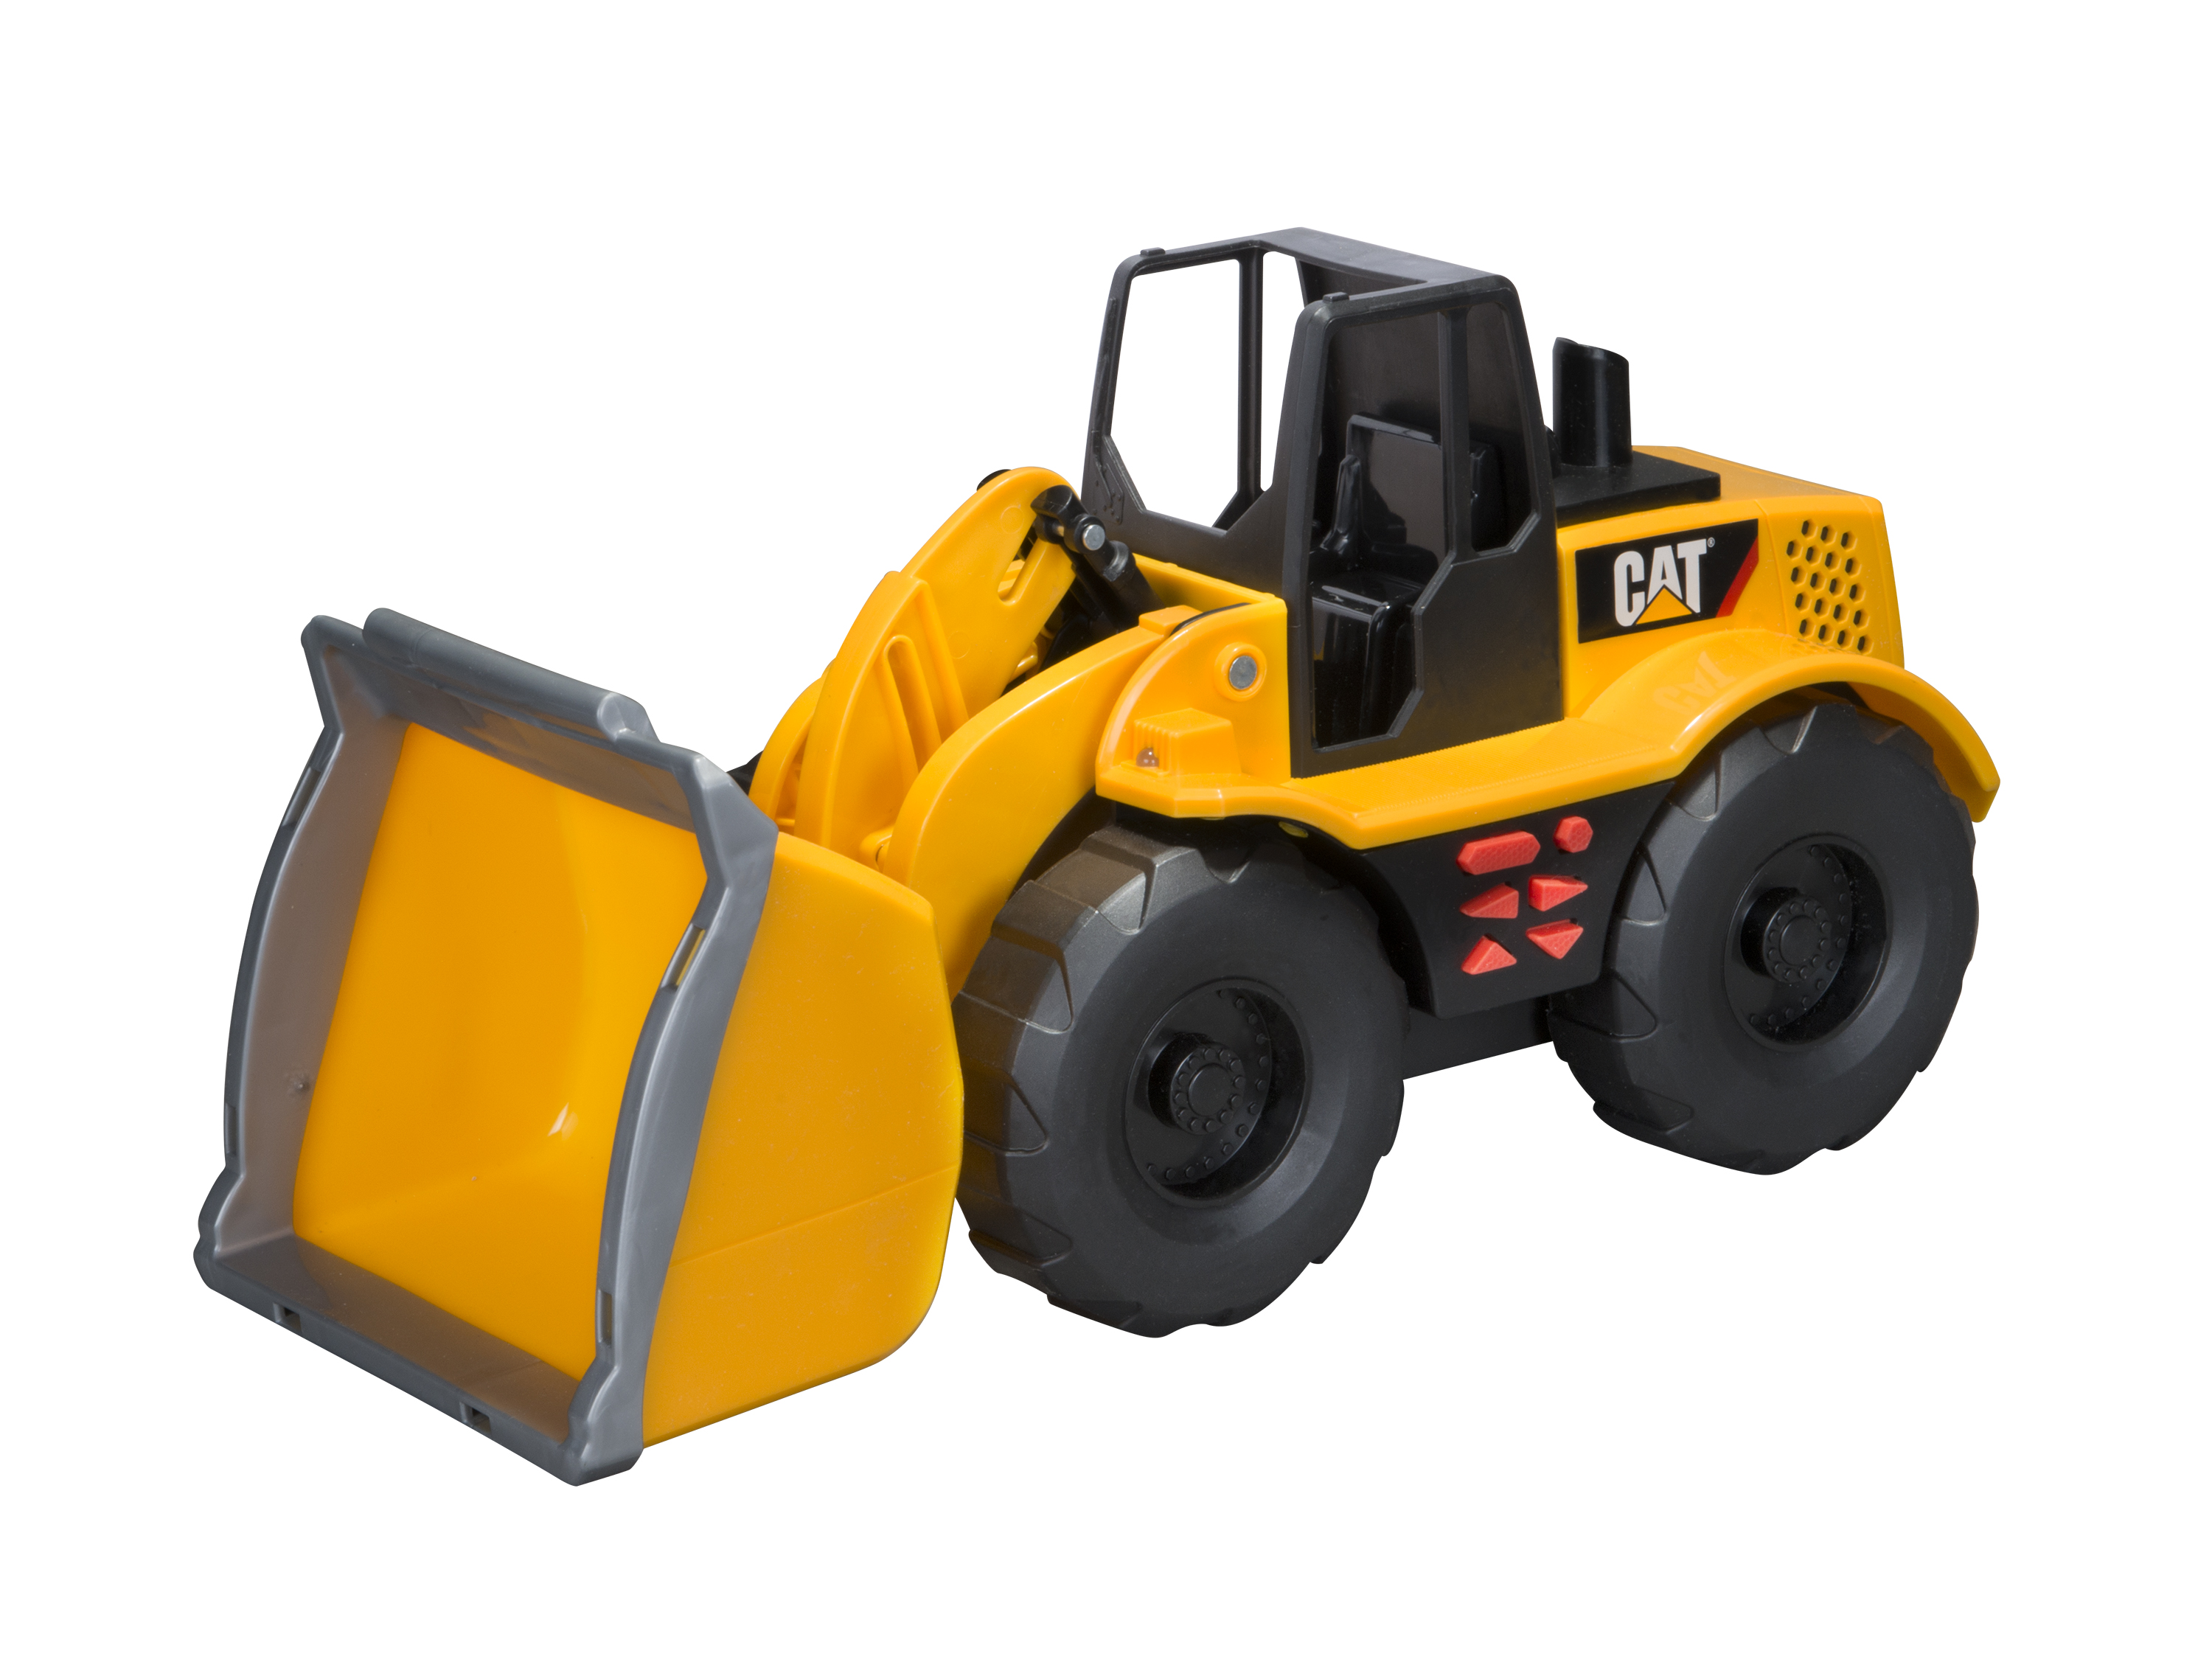 CAT Job Site Machines L&S Trucks Wheel Loader by Generic